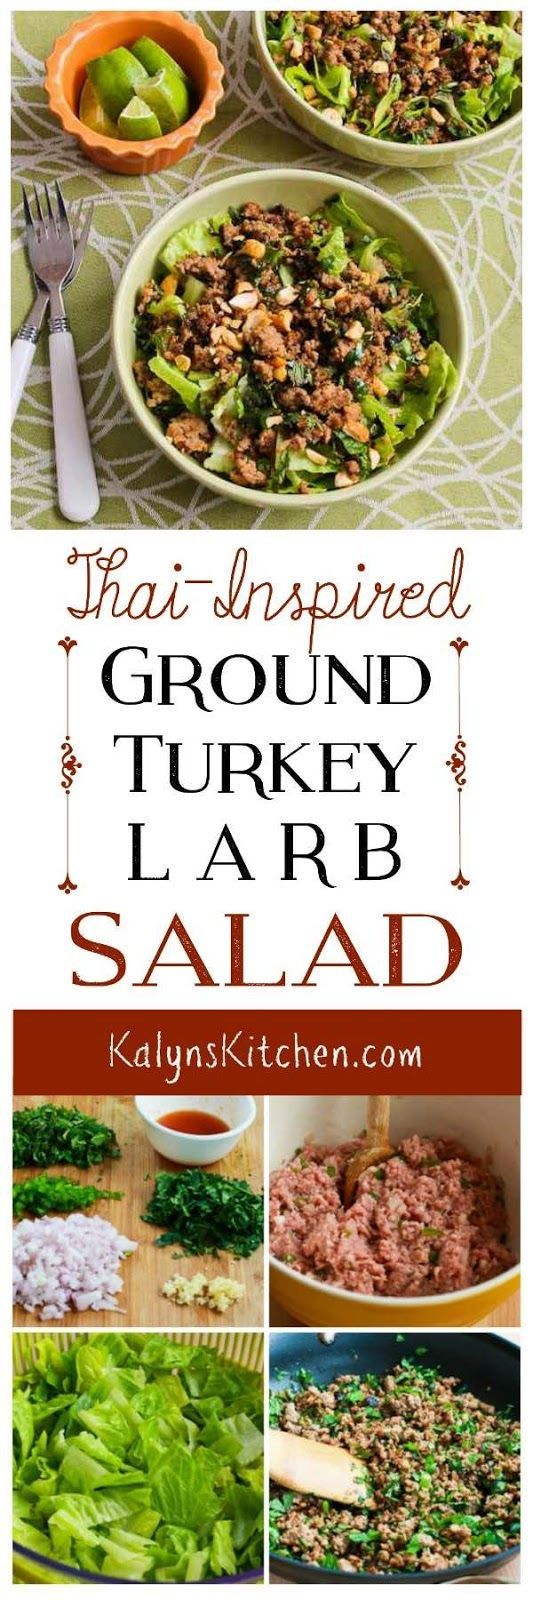 I love this Thai-Inspired Turkey Larb Salad with Sriracha, Mint, Cilantro, and Peanuts, and this delicious salad is low-carb, low-glycemic, gluten-free, and can be Keto and South Beach Diet friendly with approved sweetener. [found on KalynsKitchen.com] #ThaiLarbSalad #LarbSalad #ThaiInspiredSalad #GroundTurkeyThaiSalad